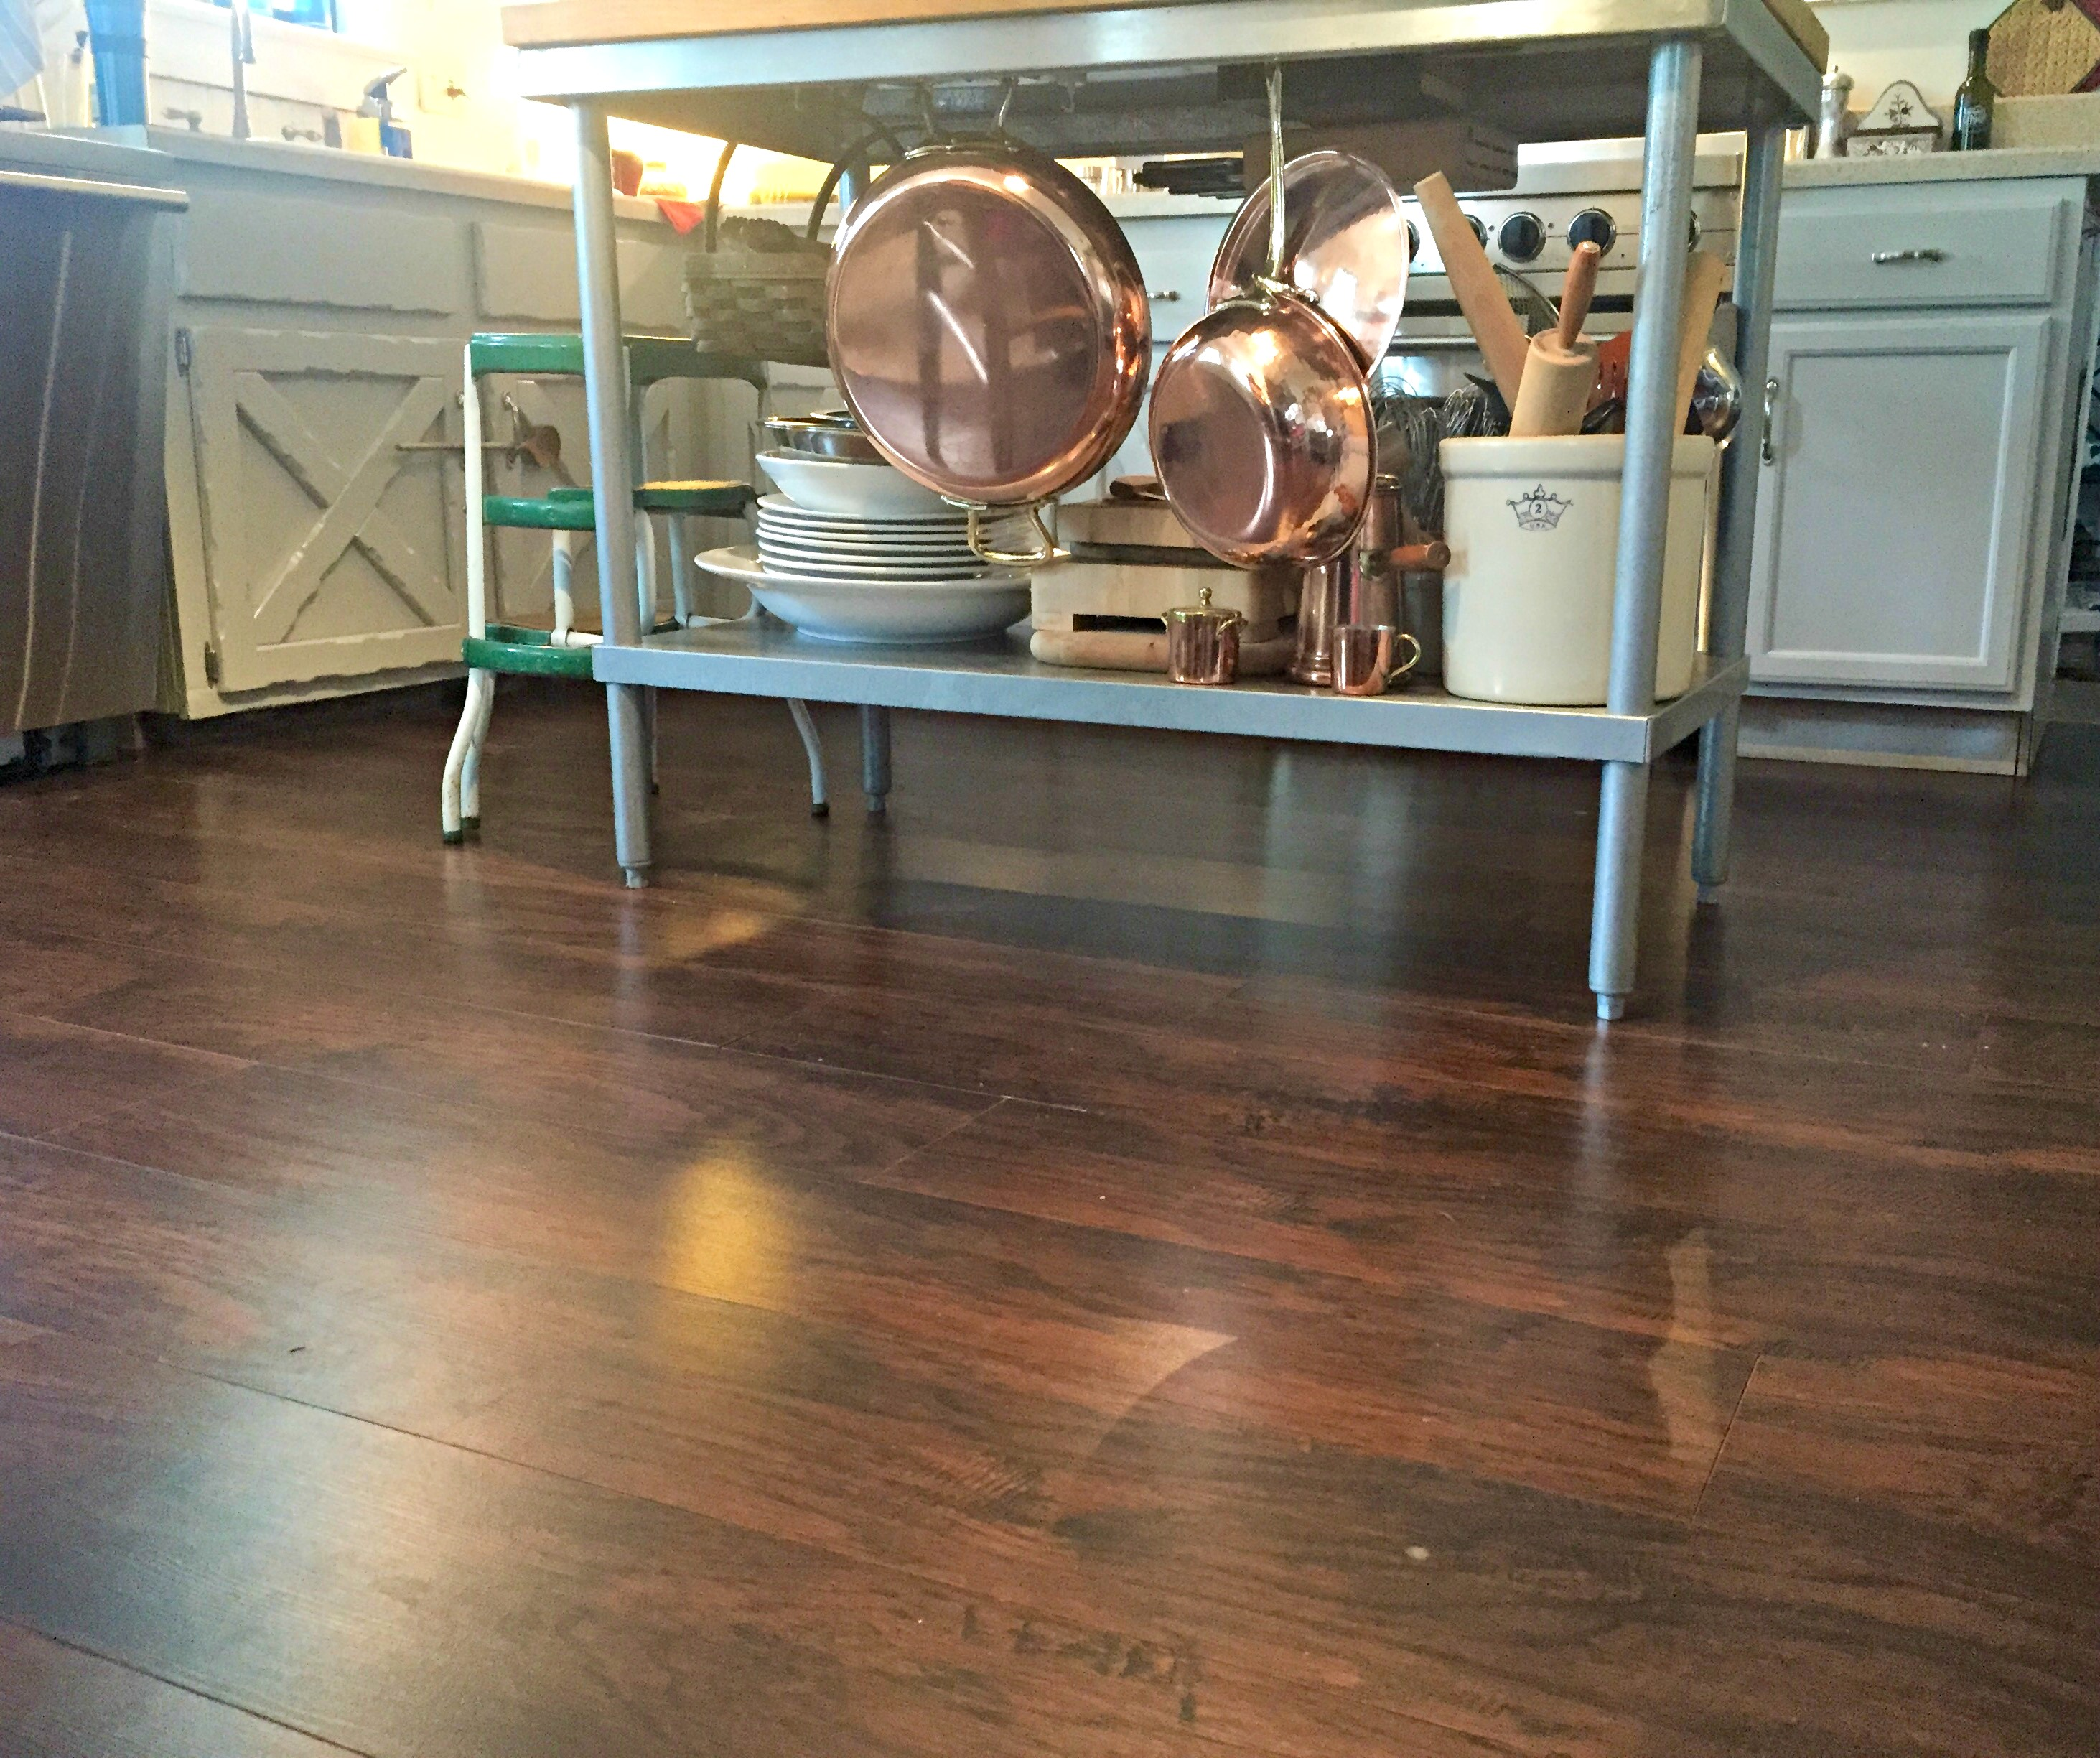 A New Kitchen Floor For Less Than $150